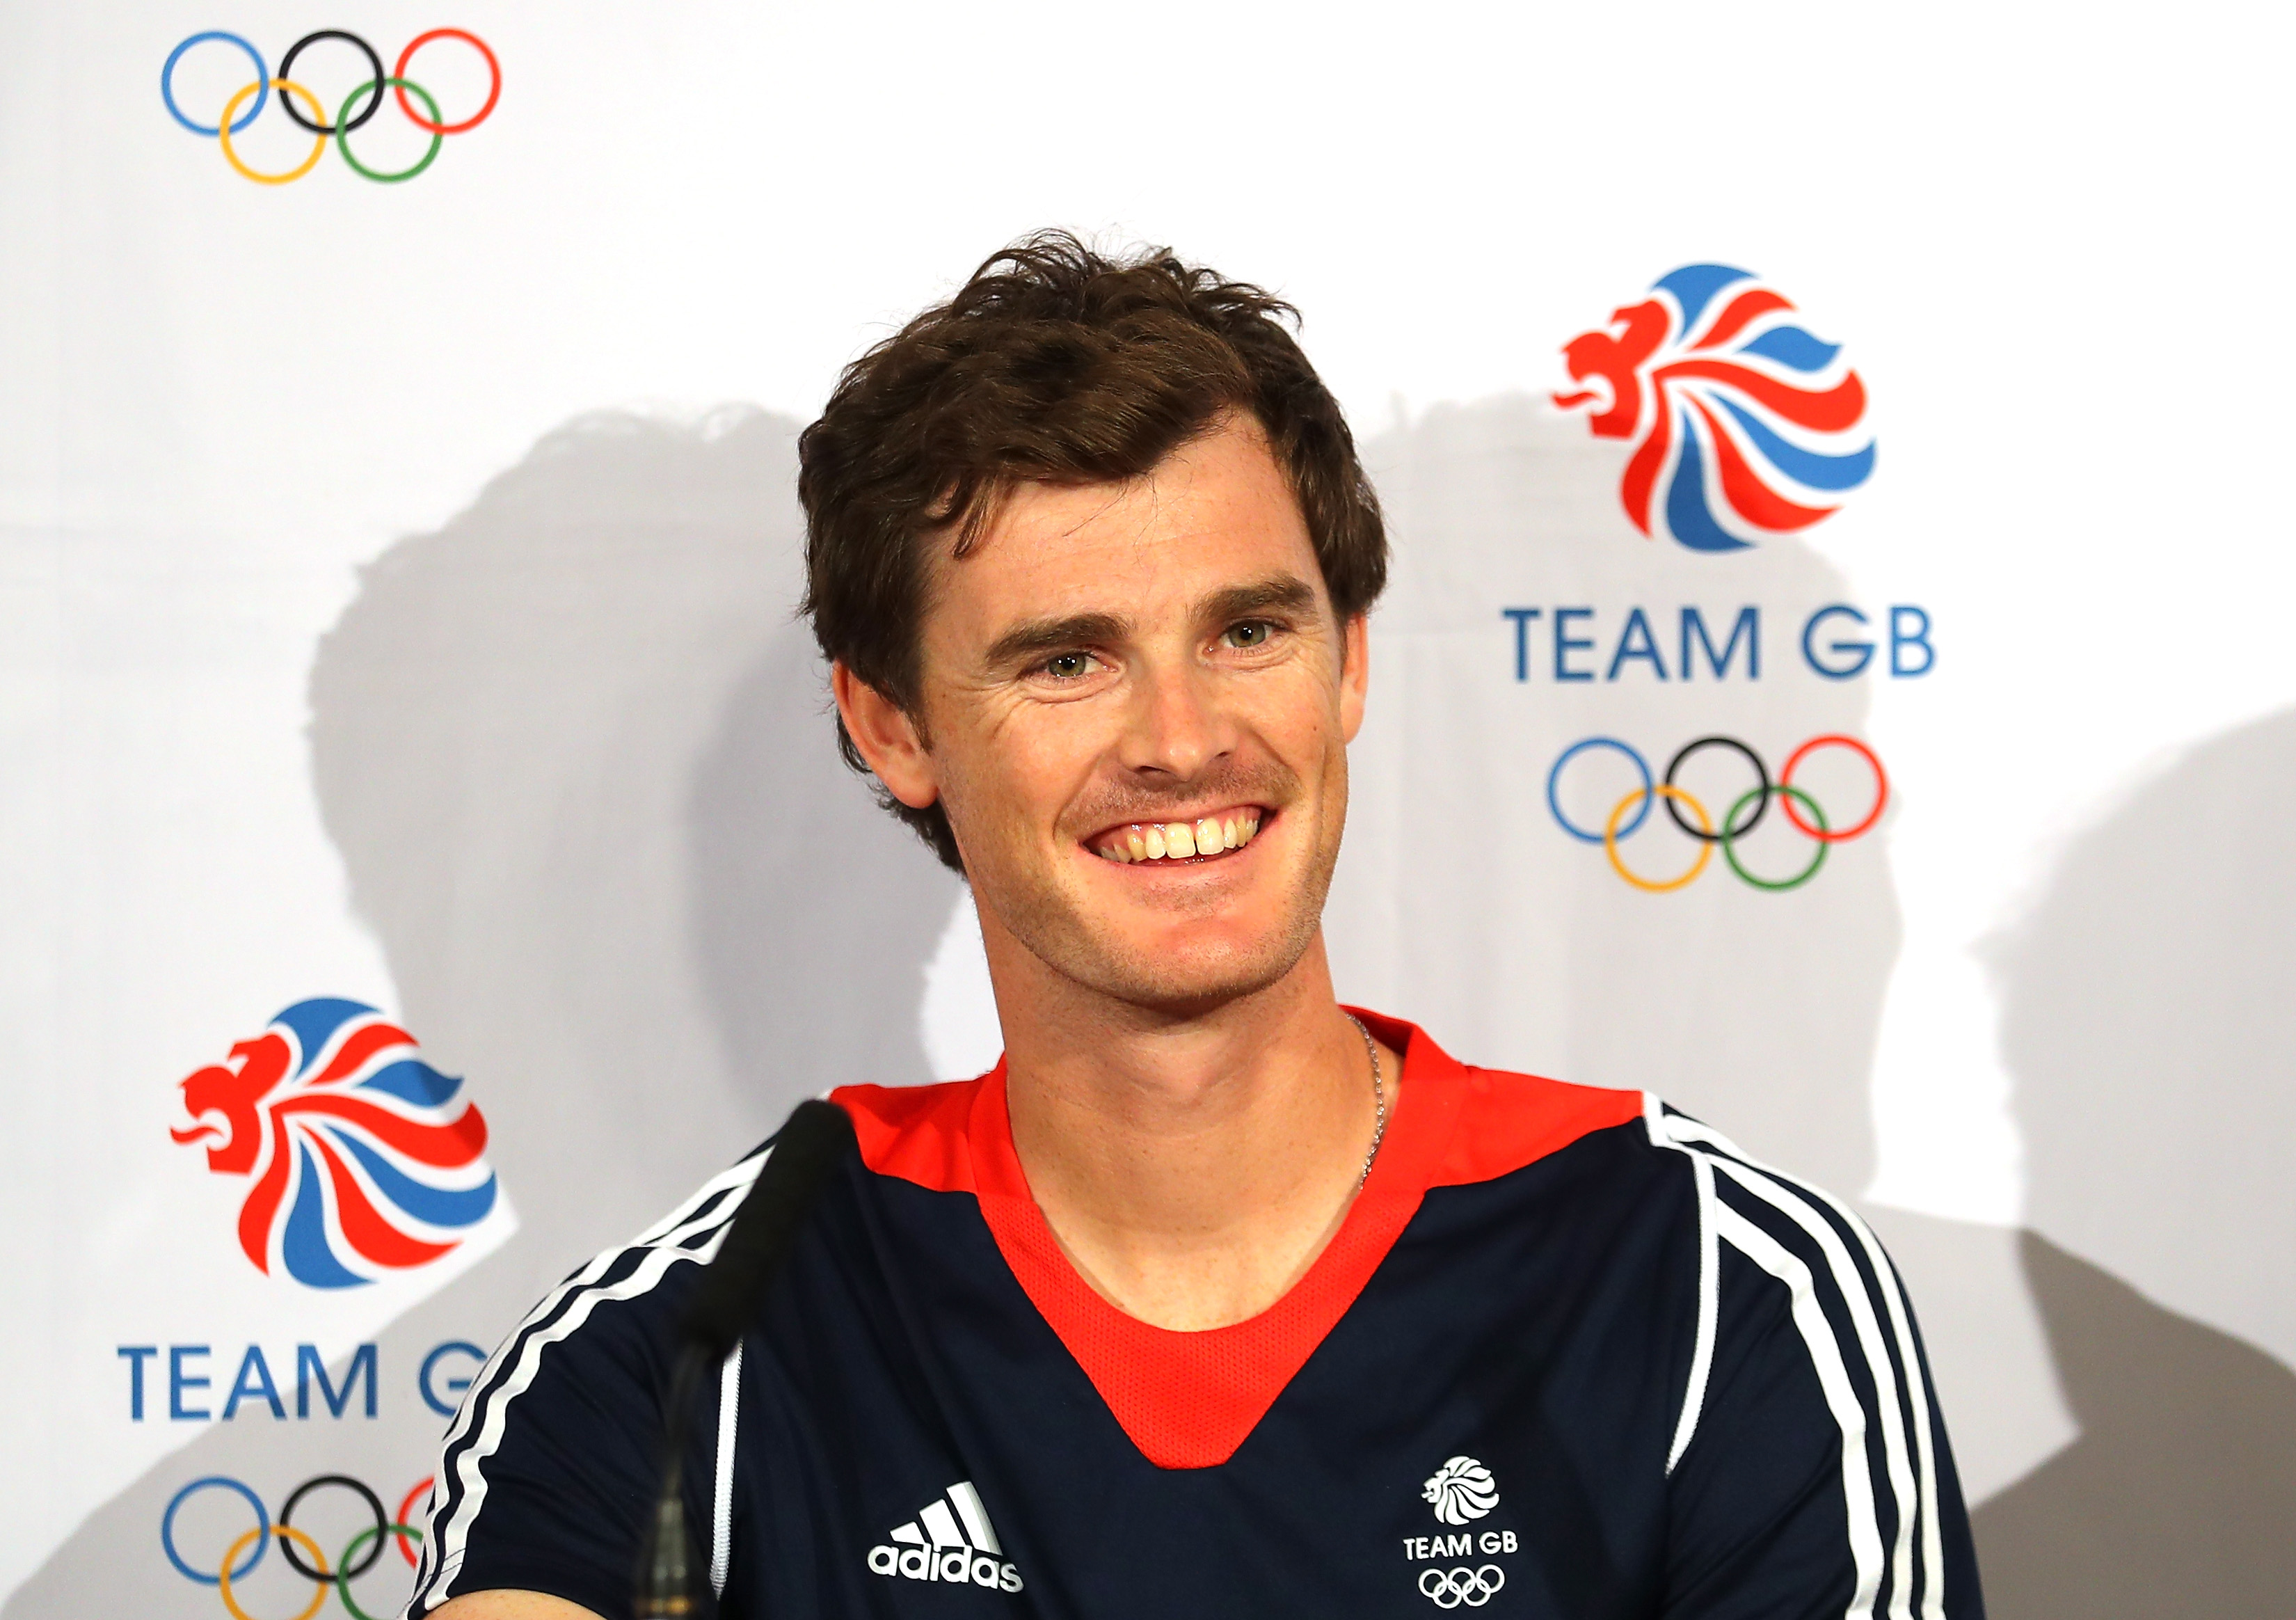 LONDON, ENGLAND - JUNE 10: Jamie Murray of Great Britain speaks to the media during an announcement of tennis athletes named in Team GB for the Rio 2016 Olympic Games at The Queen's Club on June 10, 2016 in London, England. (Photo by Warren Little/Getty Images)